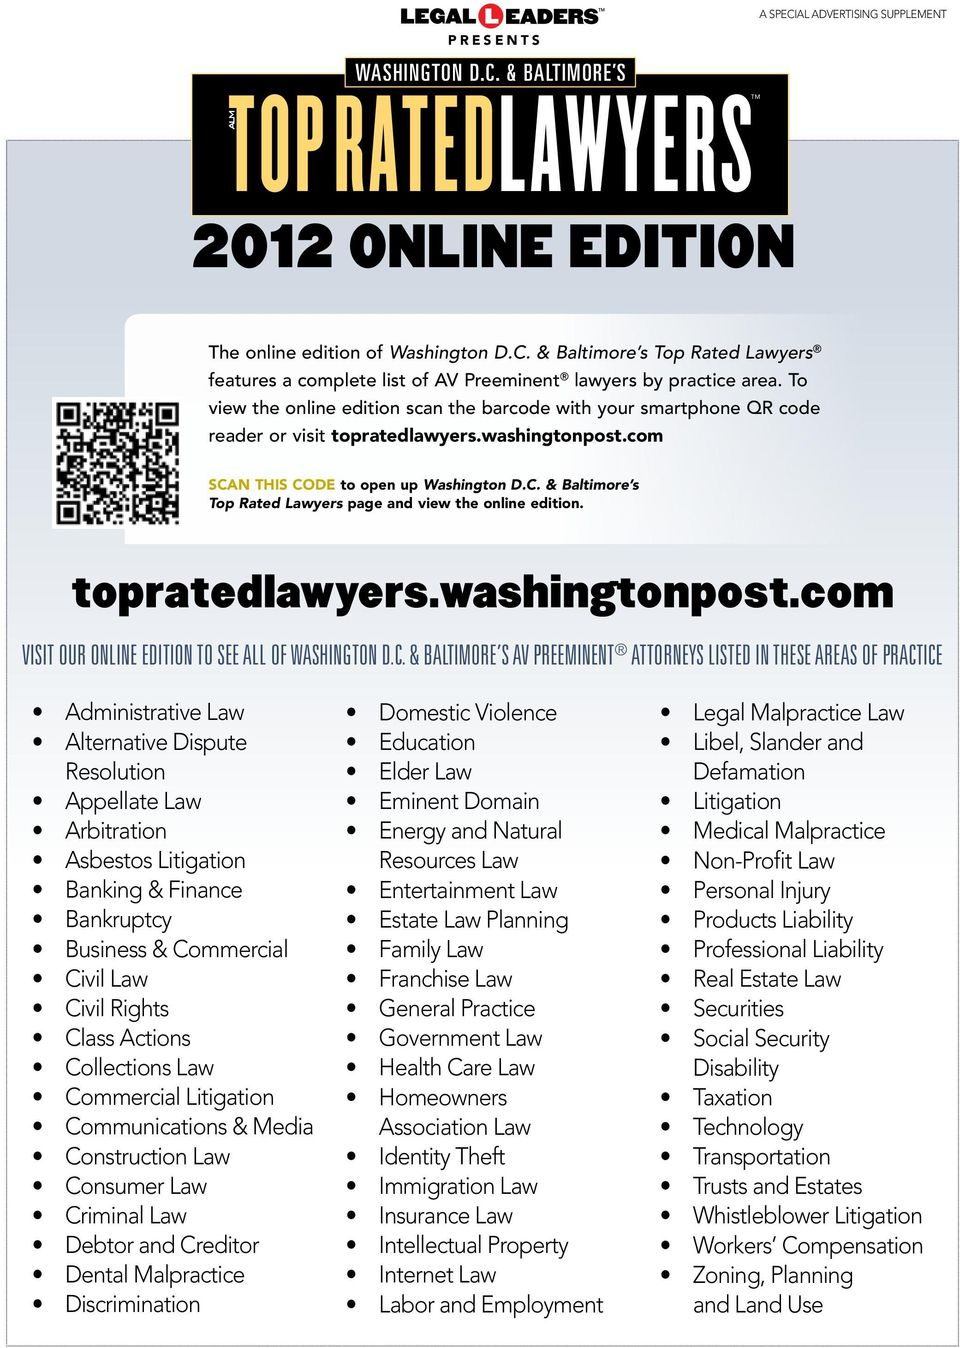 To view the online edition scan the barcode with your smartphone QR code reader or visit topratedlawyers.washingtonpost.com SCAN THIS CODE to open up Washington D.C. & Baltimore s Top Rated Lawyers page and view the online edition.